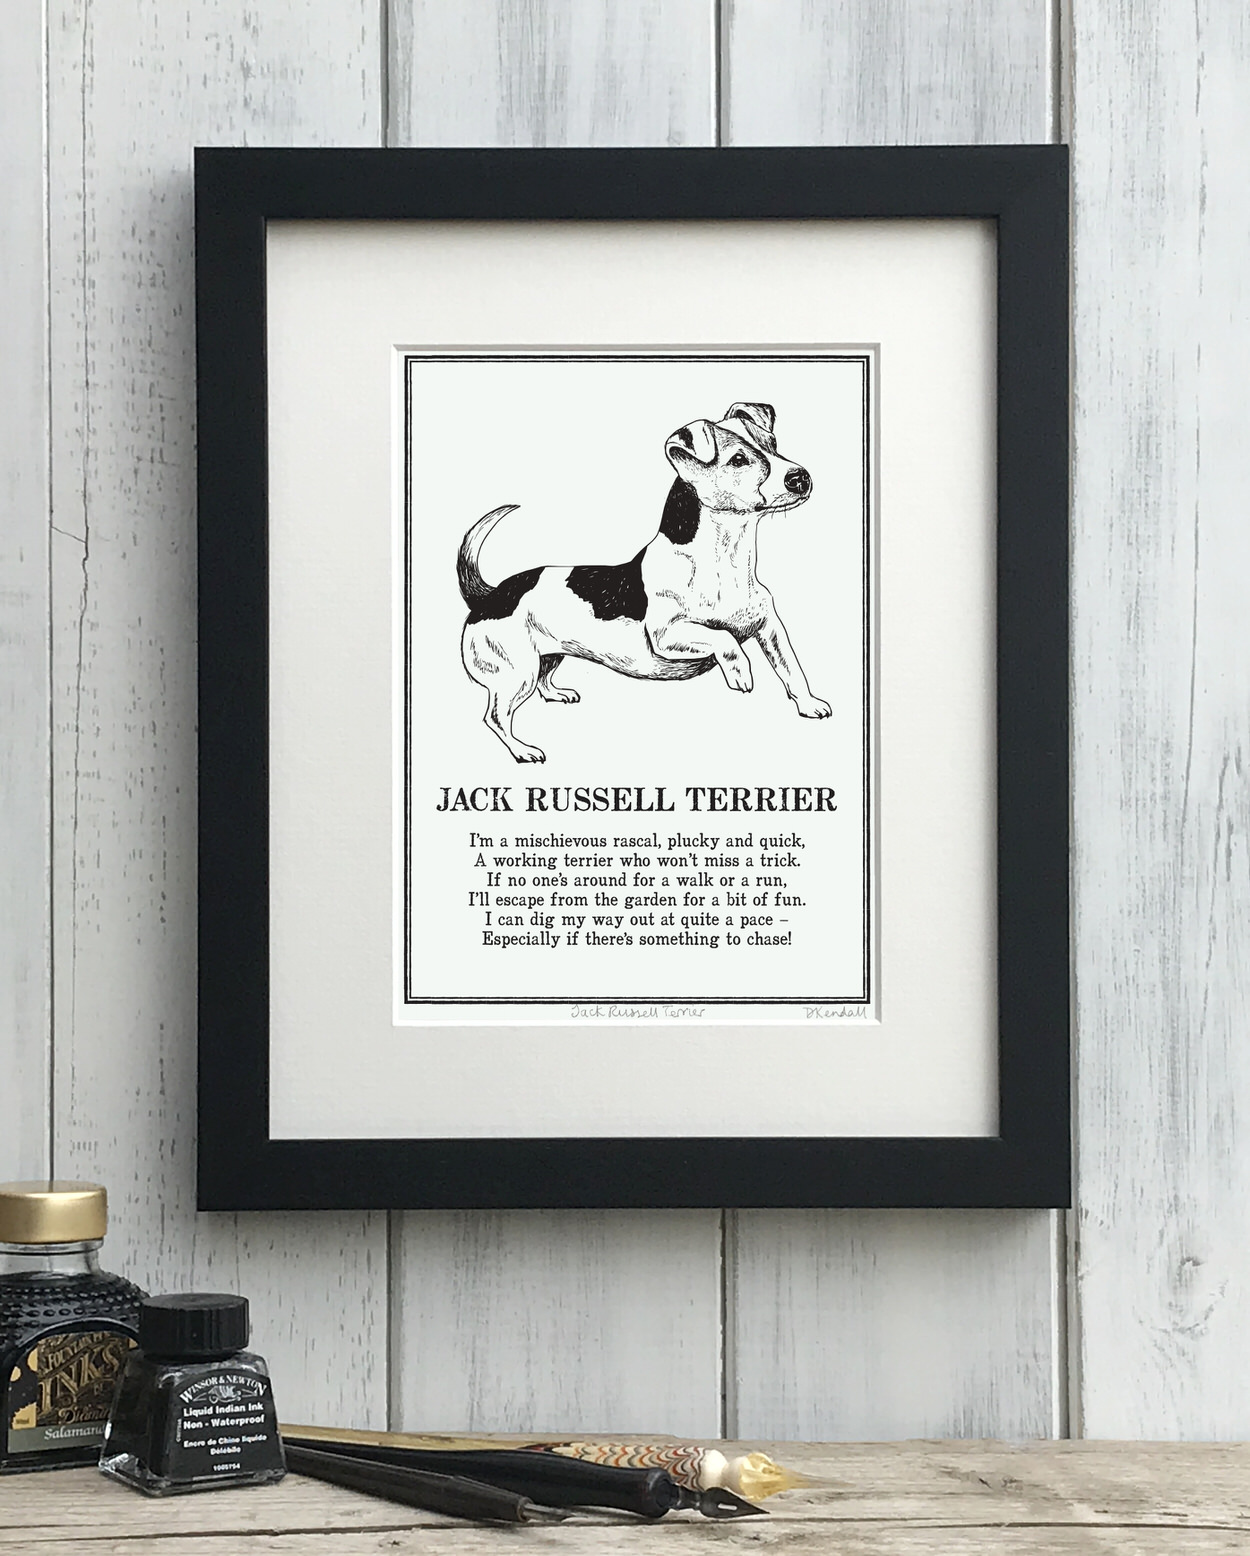 Jack Rusell Terrier print illustrated poem by The Enlightened Hound